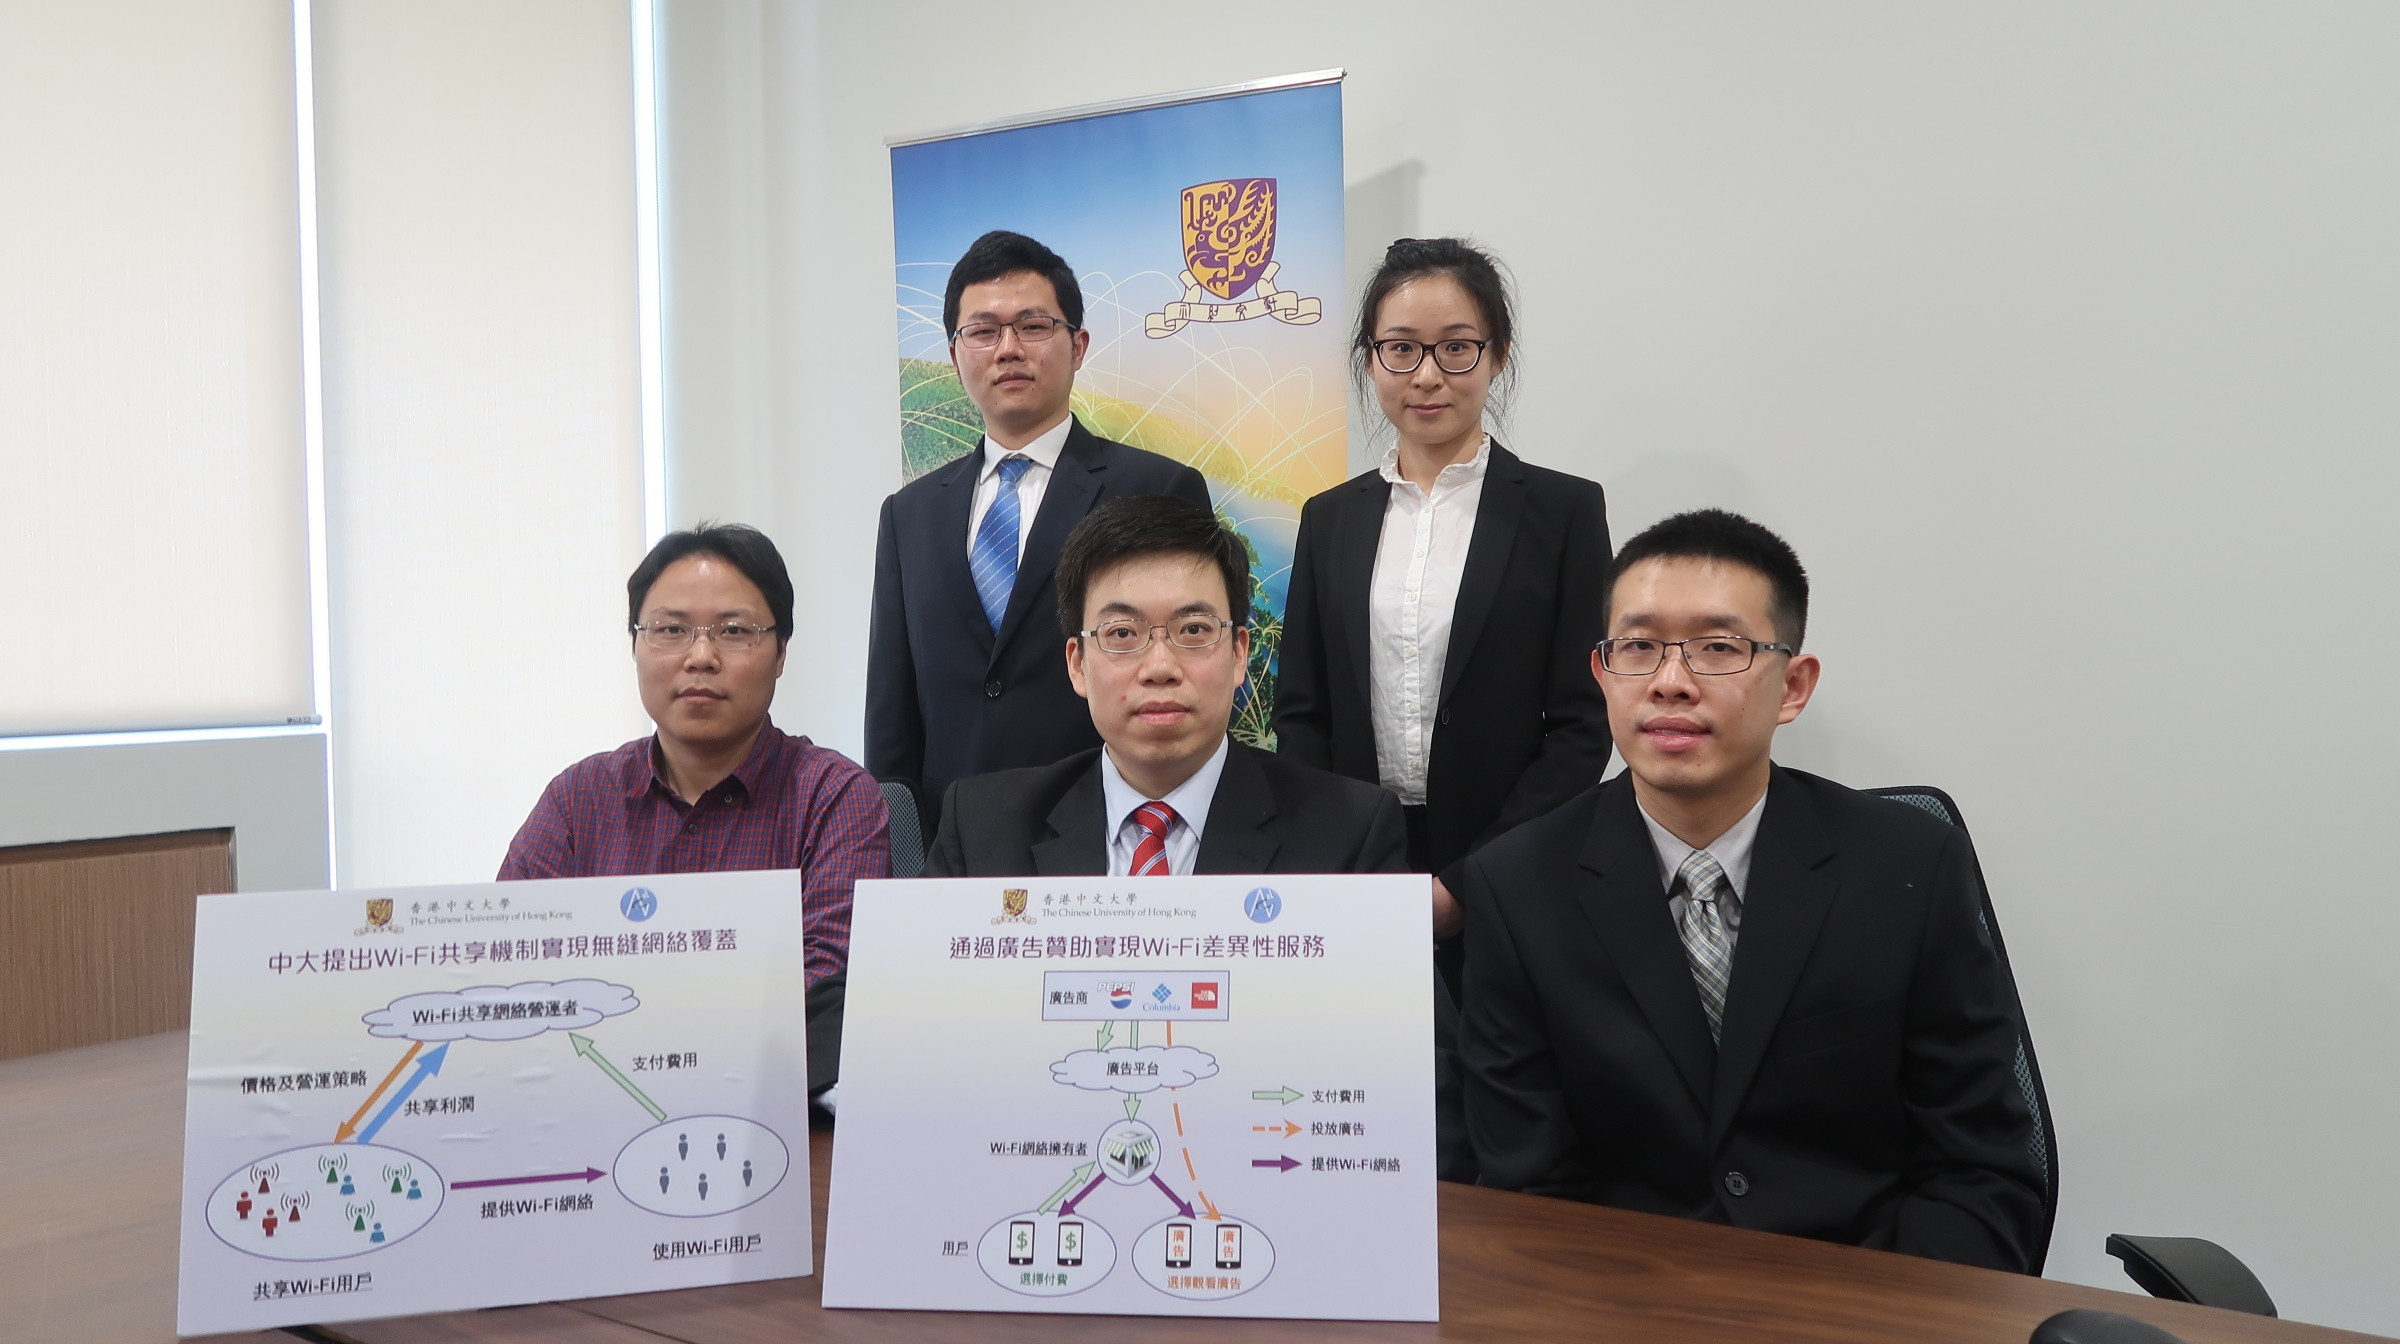 Members of the Network Communications and Economics Lab, Department of Information Engineering, CUHK: Prof. Jianwei Huang (front row, middle), Dr. Qian Ma (back row, right), Dr. Haoran Yu (back row, left), Dr. Lin Gao (front row, left) and Dr. Man-hon Cheung (front row, right).